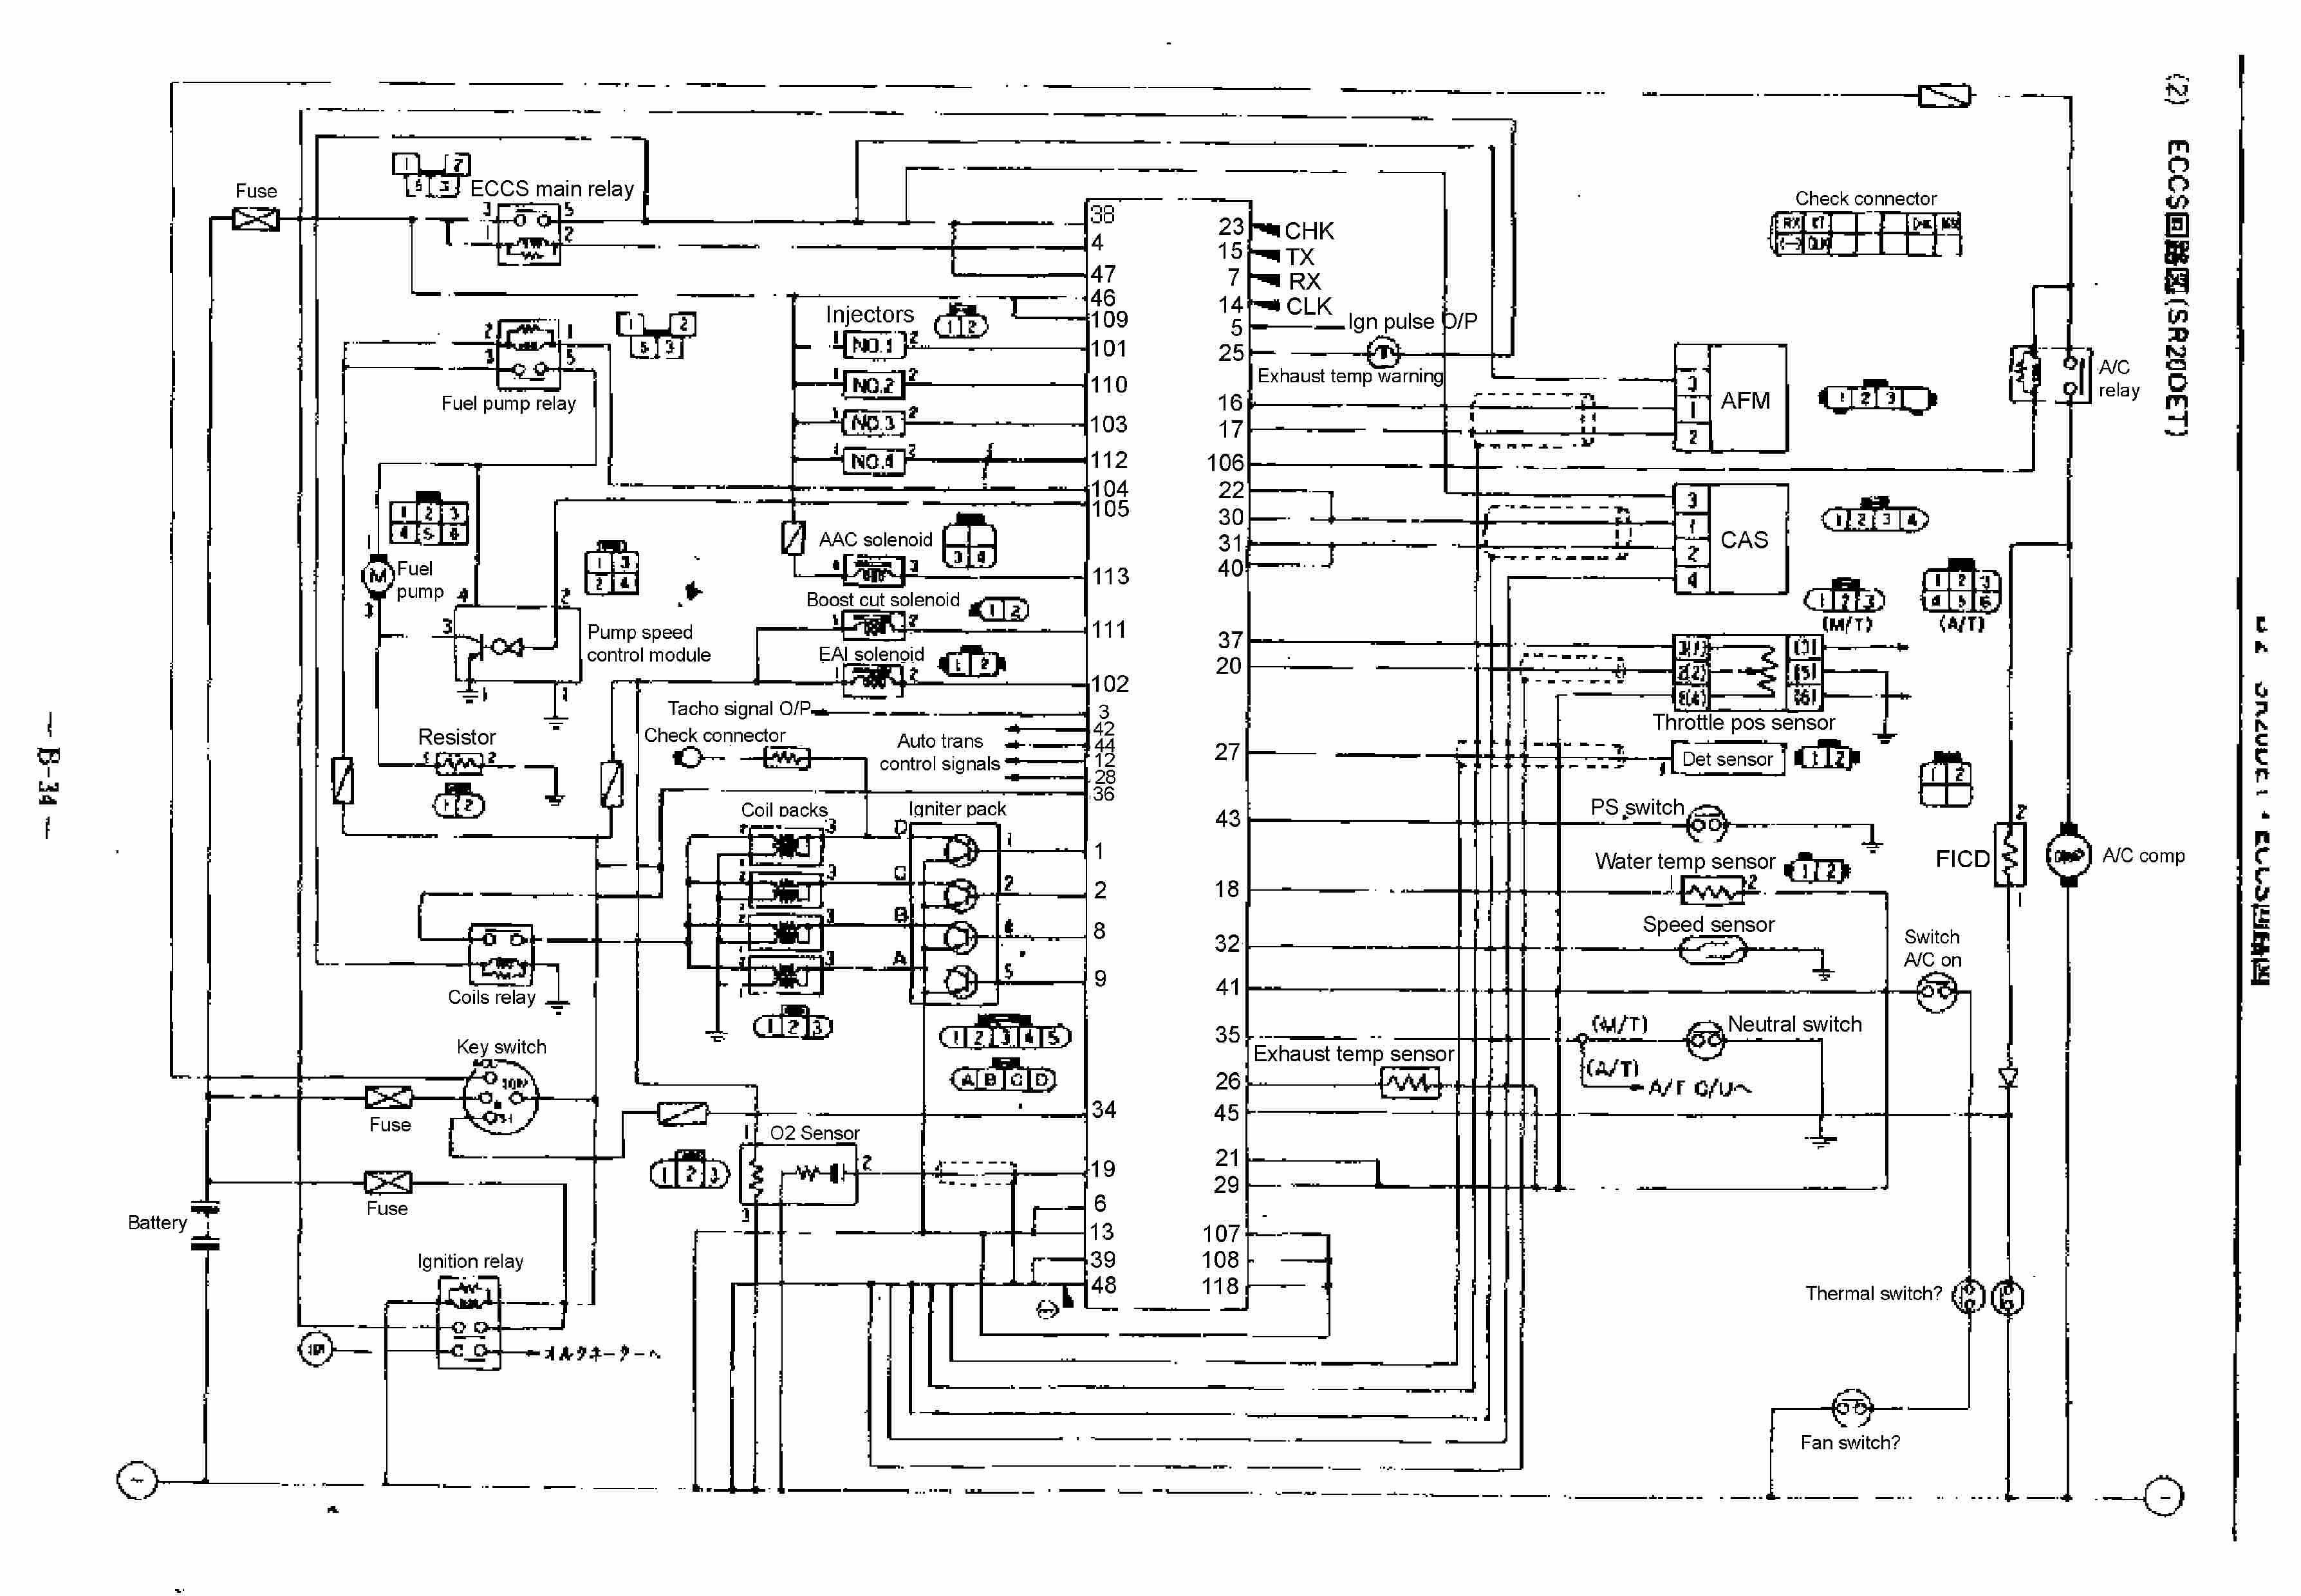 Jaguar Alternator Wiring Diagram | Wiring Diagram on thermostat troubleshooting, thermostat wire, thermostat housing, honeywell thermostat diagram, thermostat symbol, circuit diagram, air conditioning diagram, thermostat installation, thermostat clip art, thermostat schematic diagram, thermostat manual, baseboard heat diagram, thermostat white-rodgers wiringheatpump, refrigerator schematic diagram, thermostat switch, thermostat cover, wall heater thermostat diagram, controls for gas valve diagram, thermostat cable,